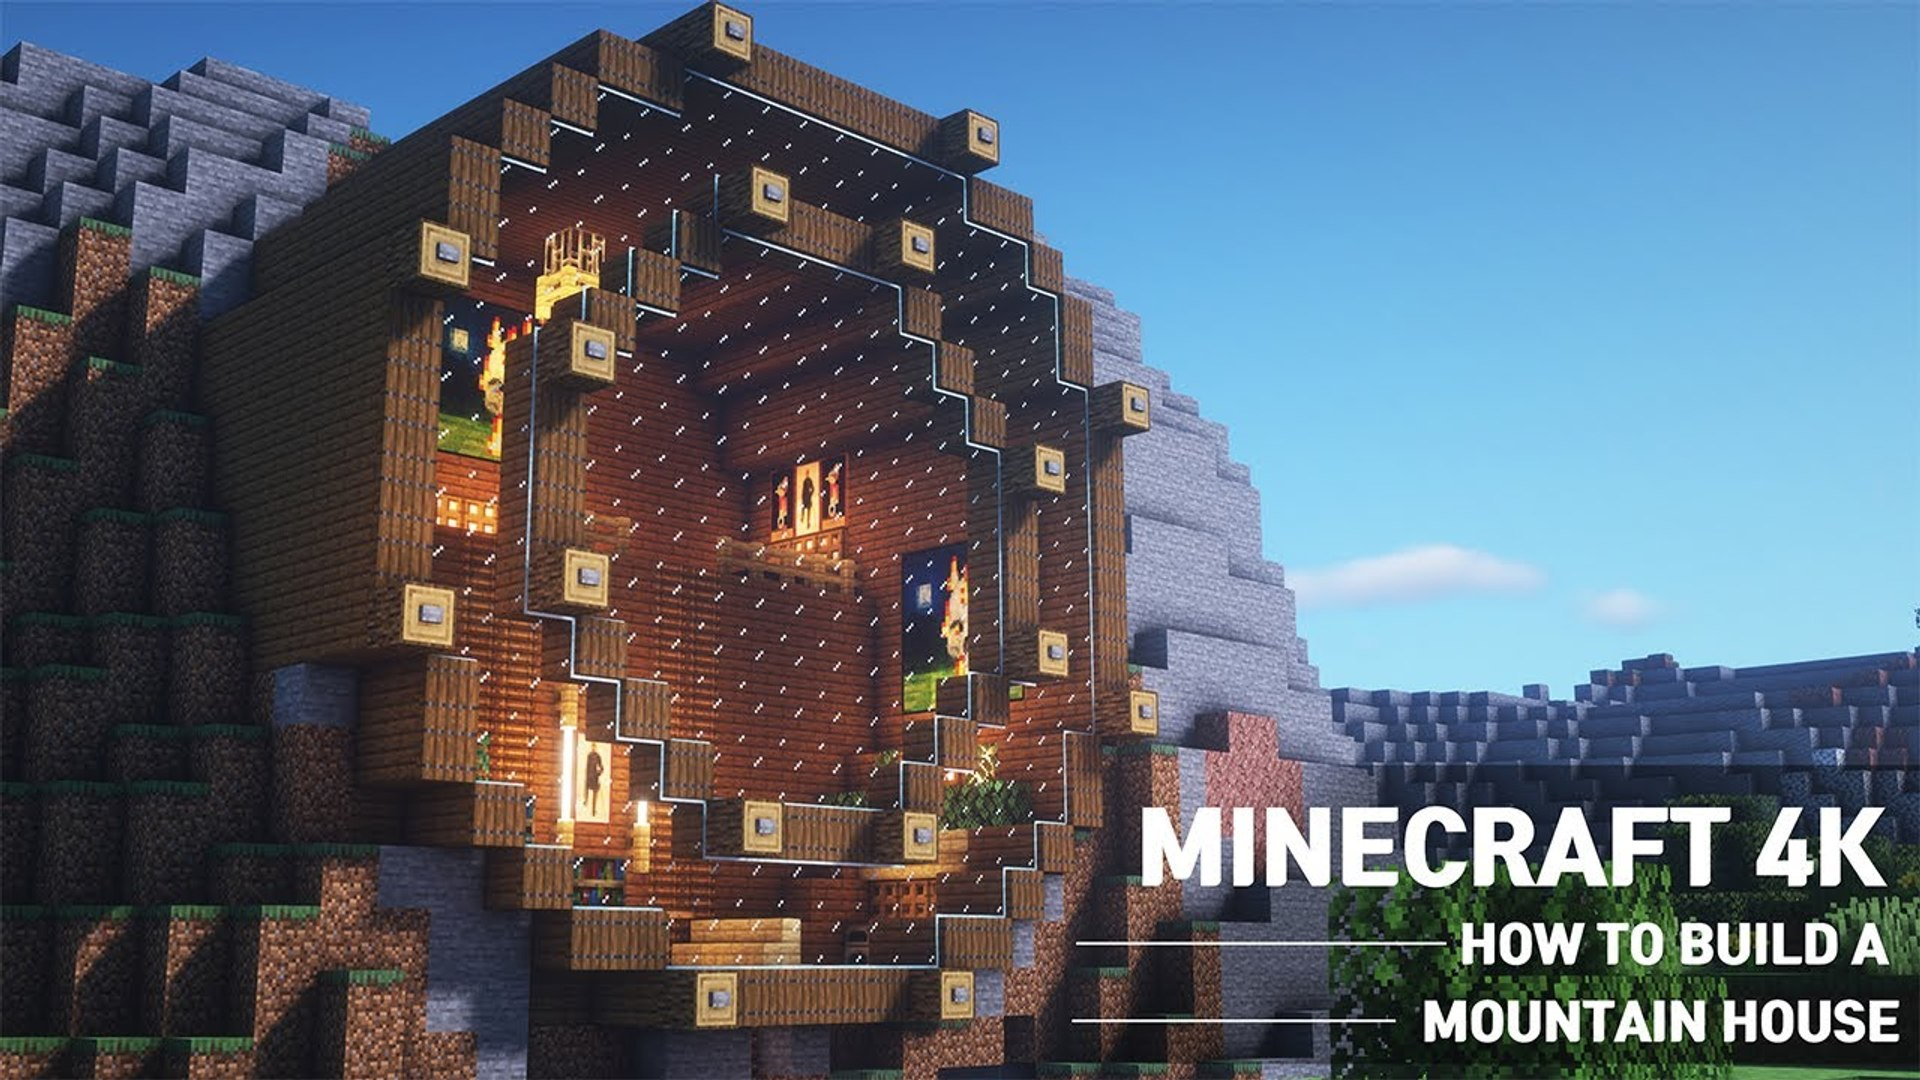 Minecraft - MOUNTAIN HOUSE TUTORIAL|How to Build in Minecraft (#9)